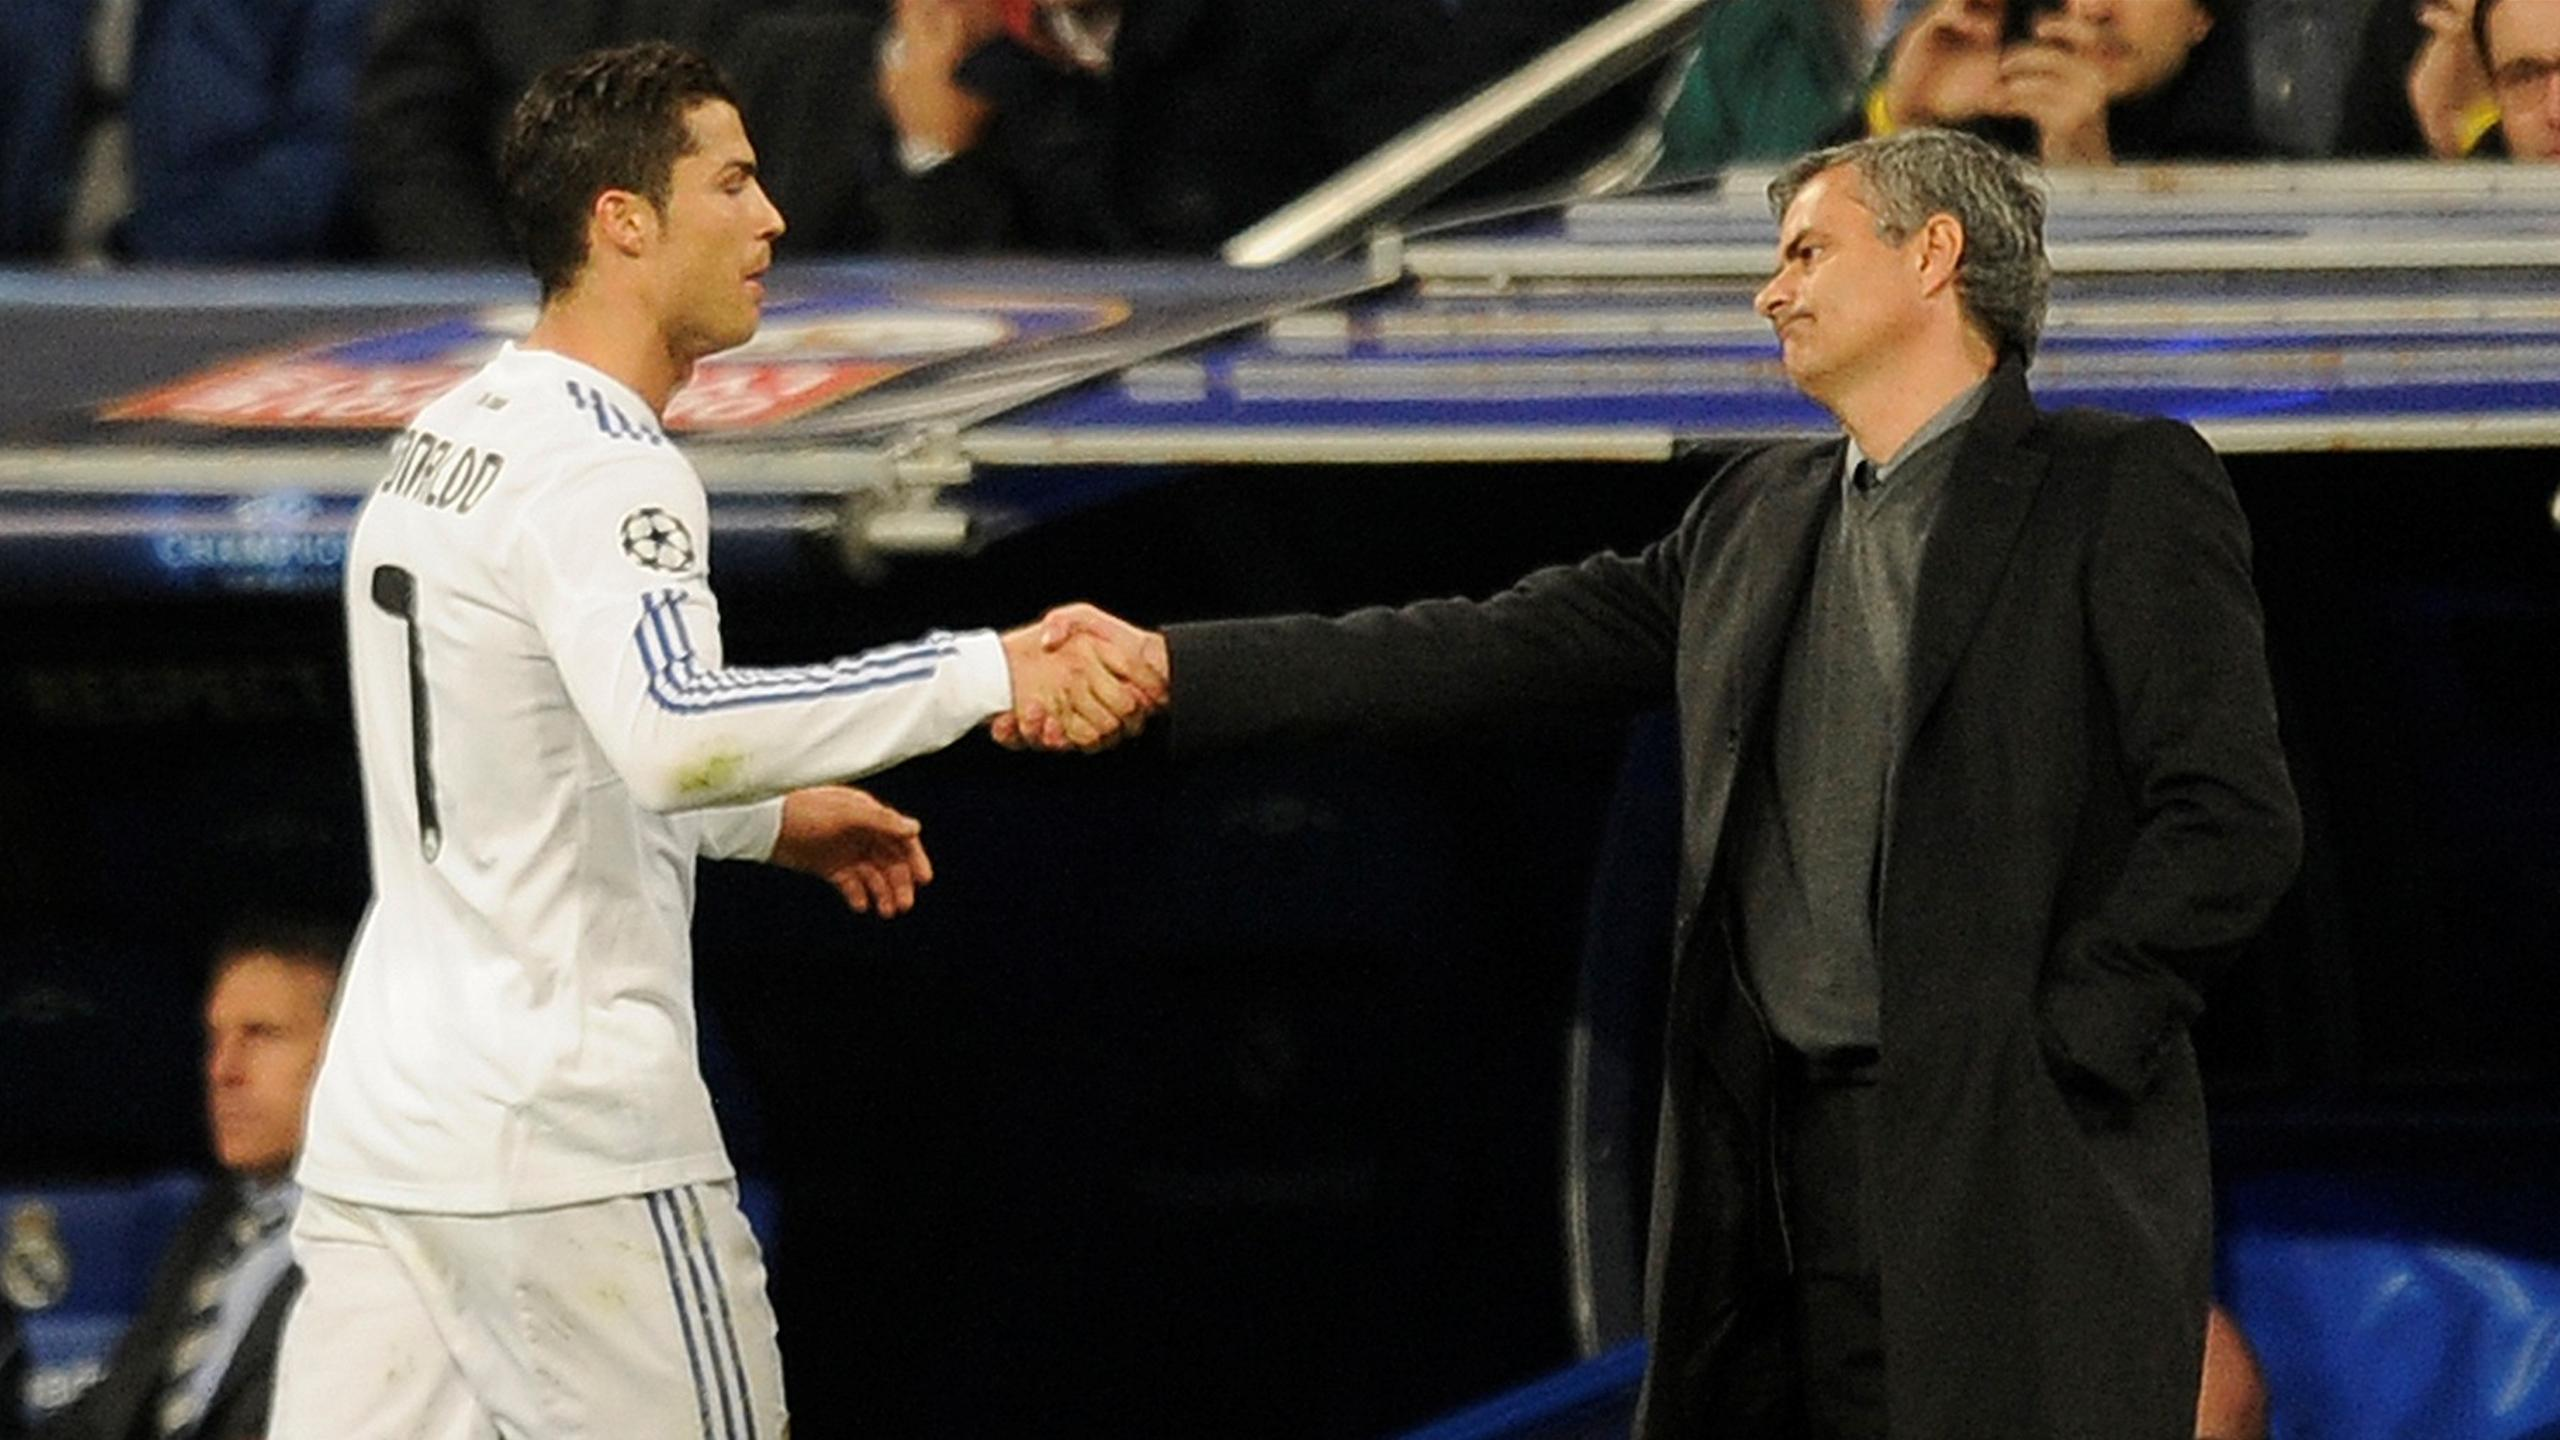 Real Madrid's Portuguese coach Jose Mourinho (R) shakes hands with Real Madrid's Portuguese forward Cristiano Ronaldo (L) during a Champions League football Real Madrid vs Olympique Lyonnais in Santiago Bernabeu Stadium in Madrid on March 16, 2011.